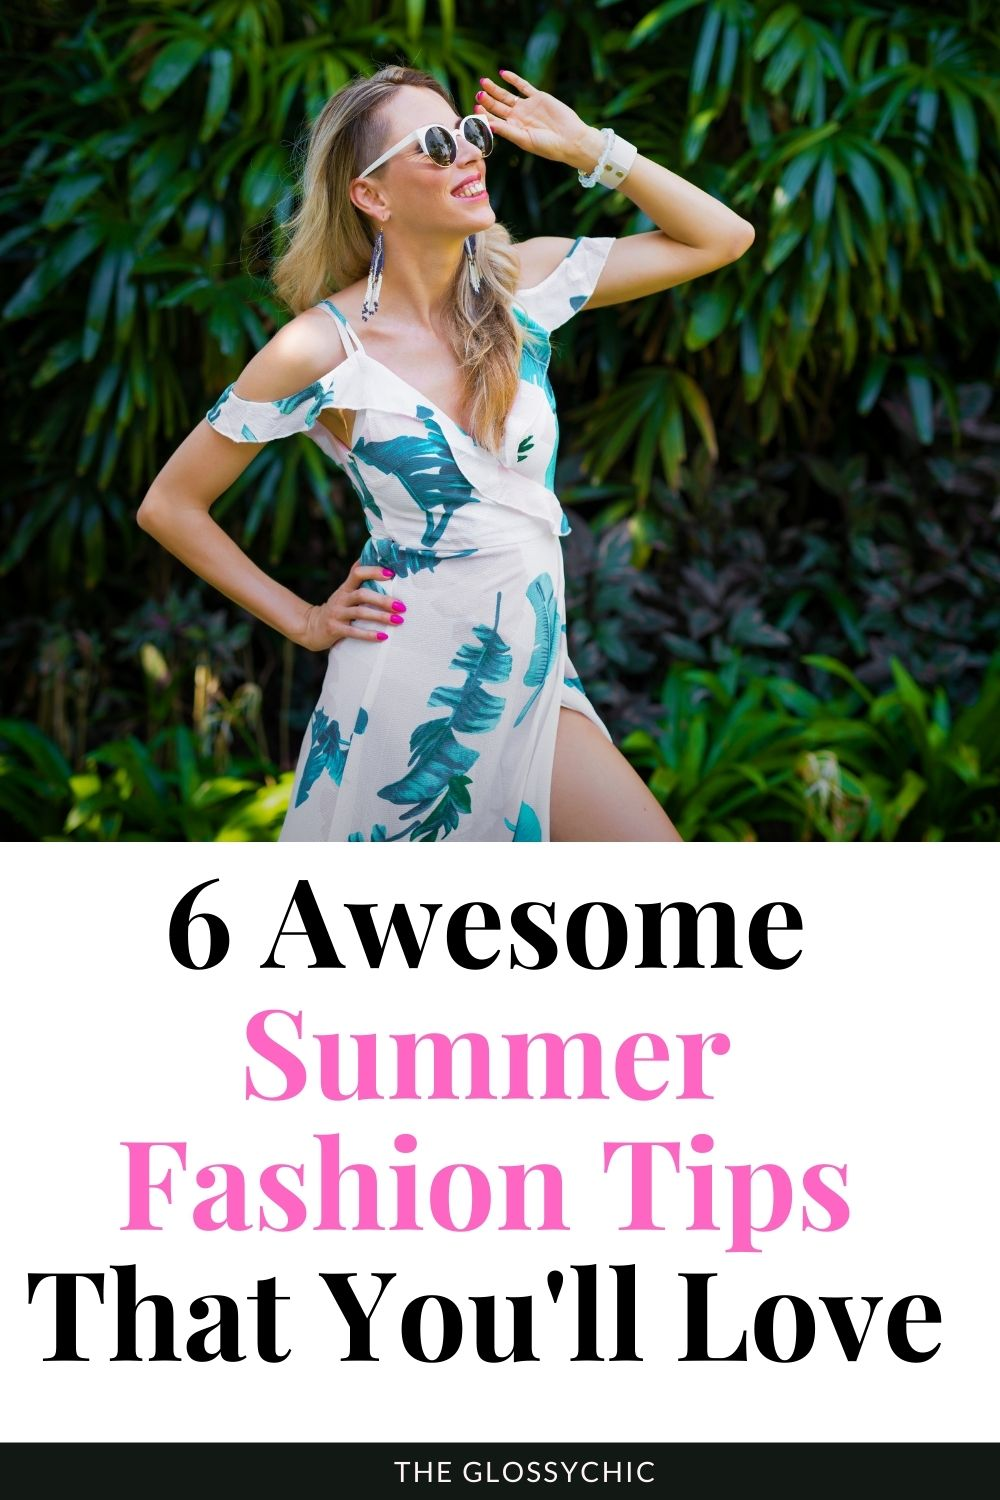 6 Awesome Summer Fashion Tips That You'll Love